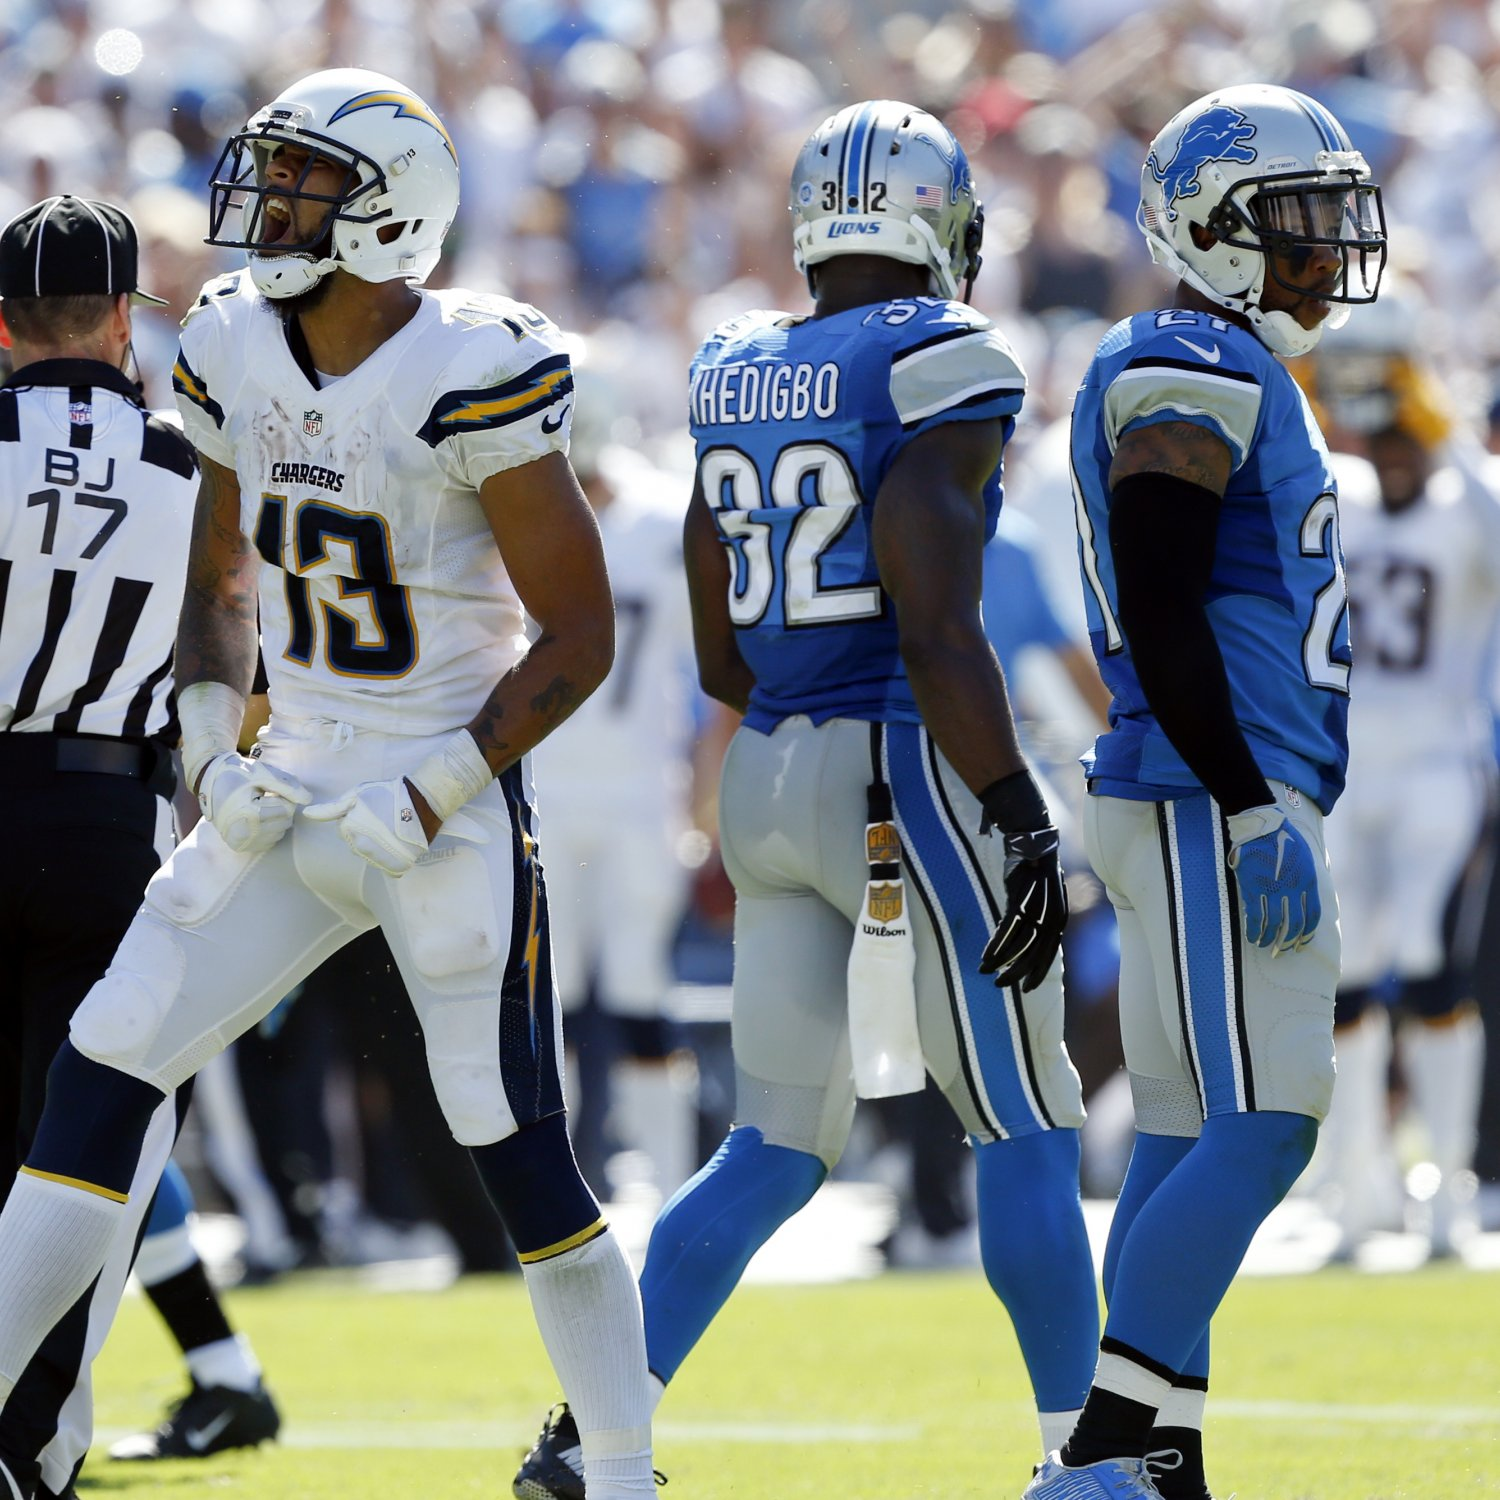 San Diego Chargers Broadcast: Detroit Lions Vs. San Diego Chargers: Video Highlights And